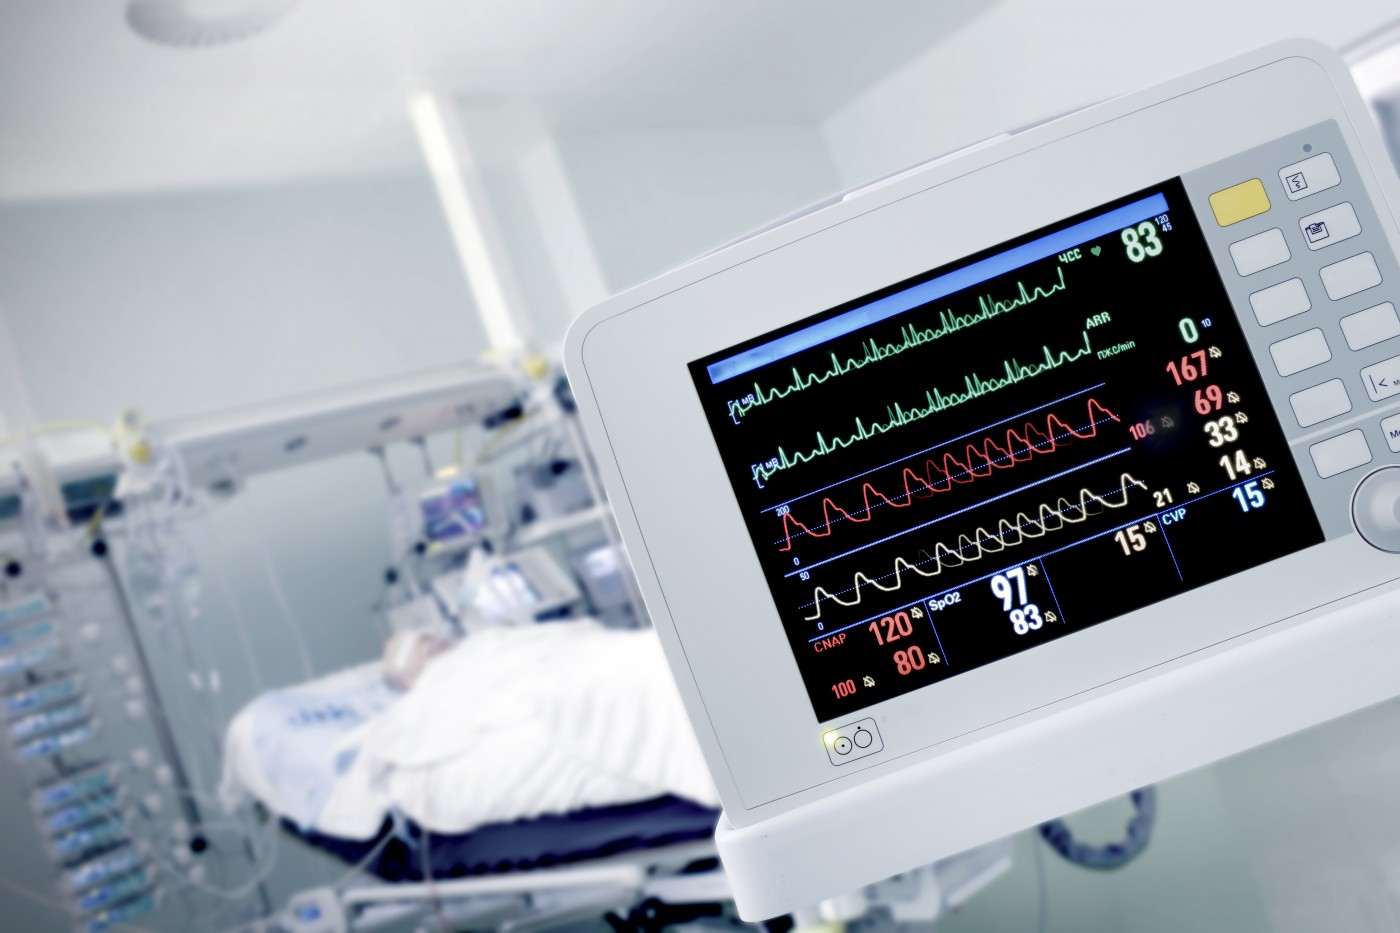 Chest Compression Depth and Rate During CPR Intervention Affects Patient Survival